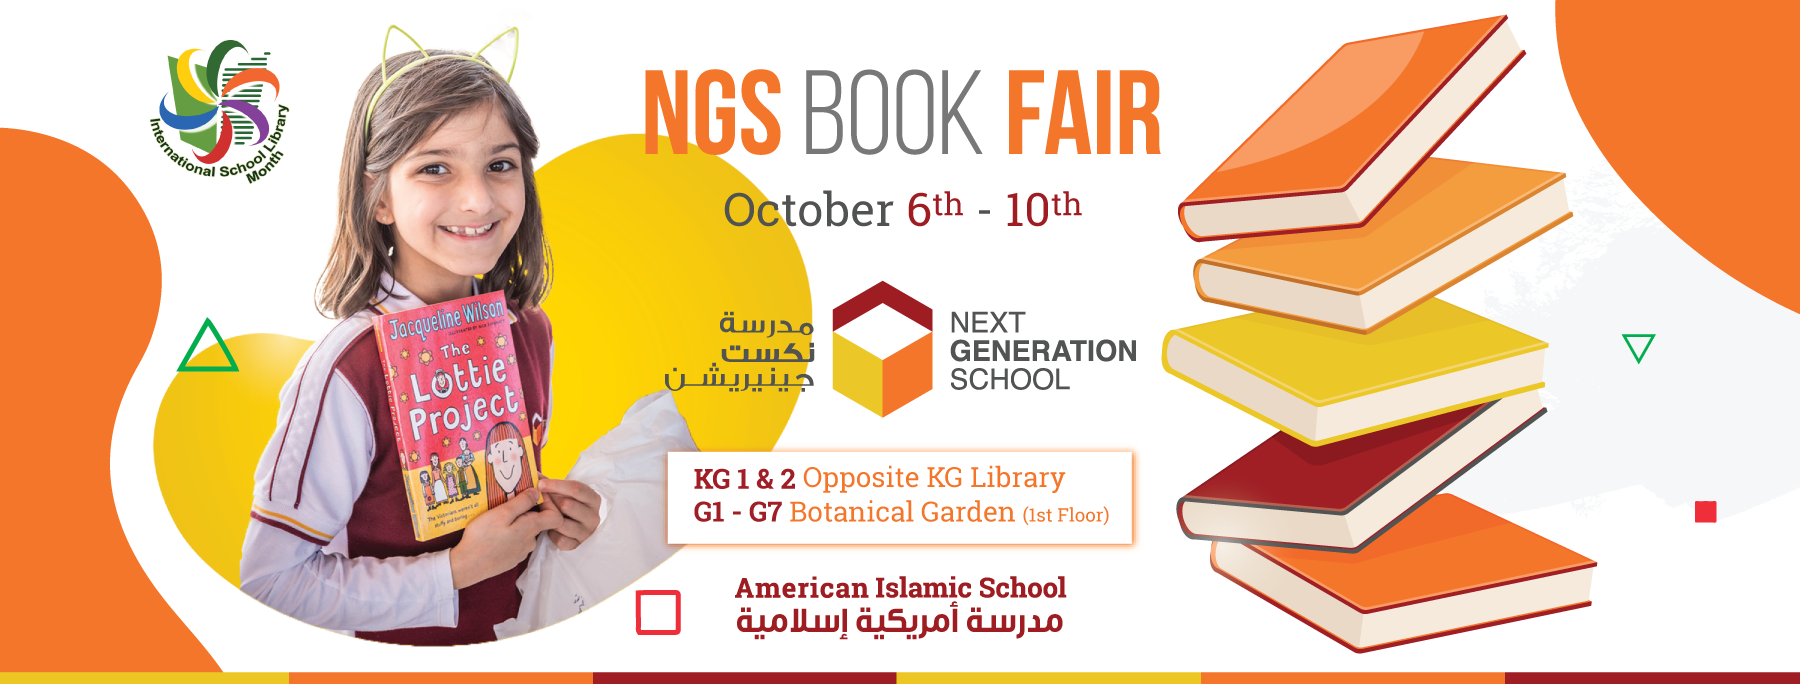 NGS Annual Book Fair Starts This Month